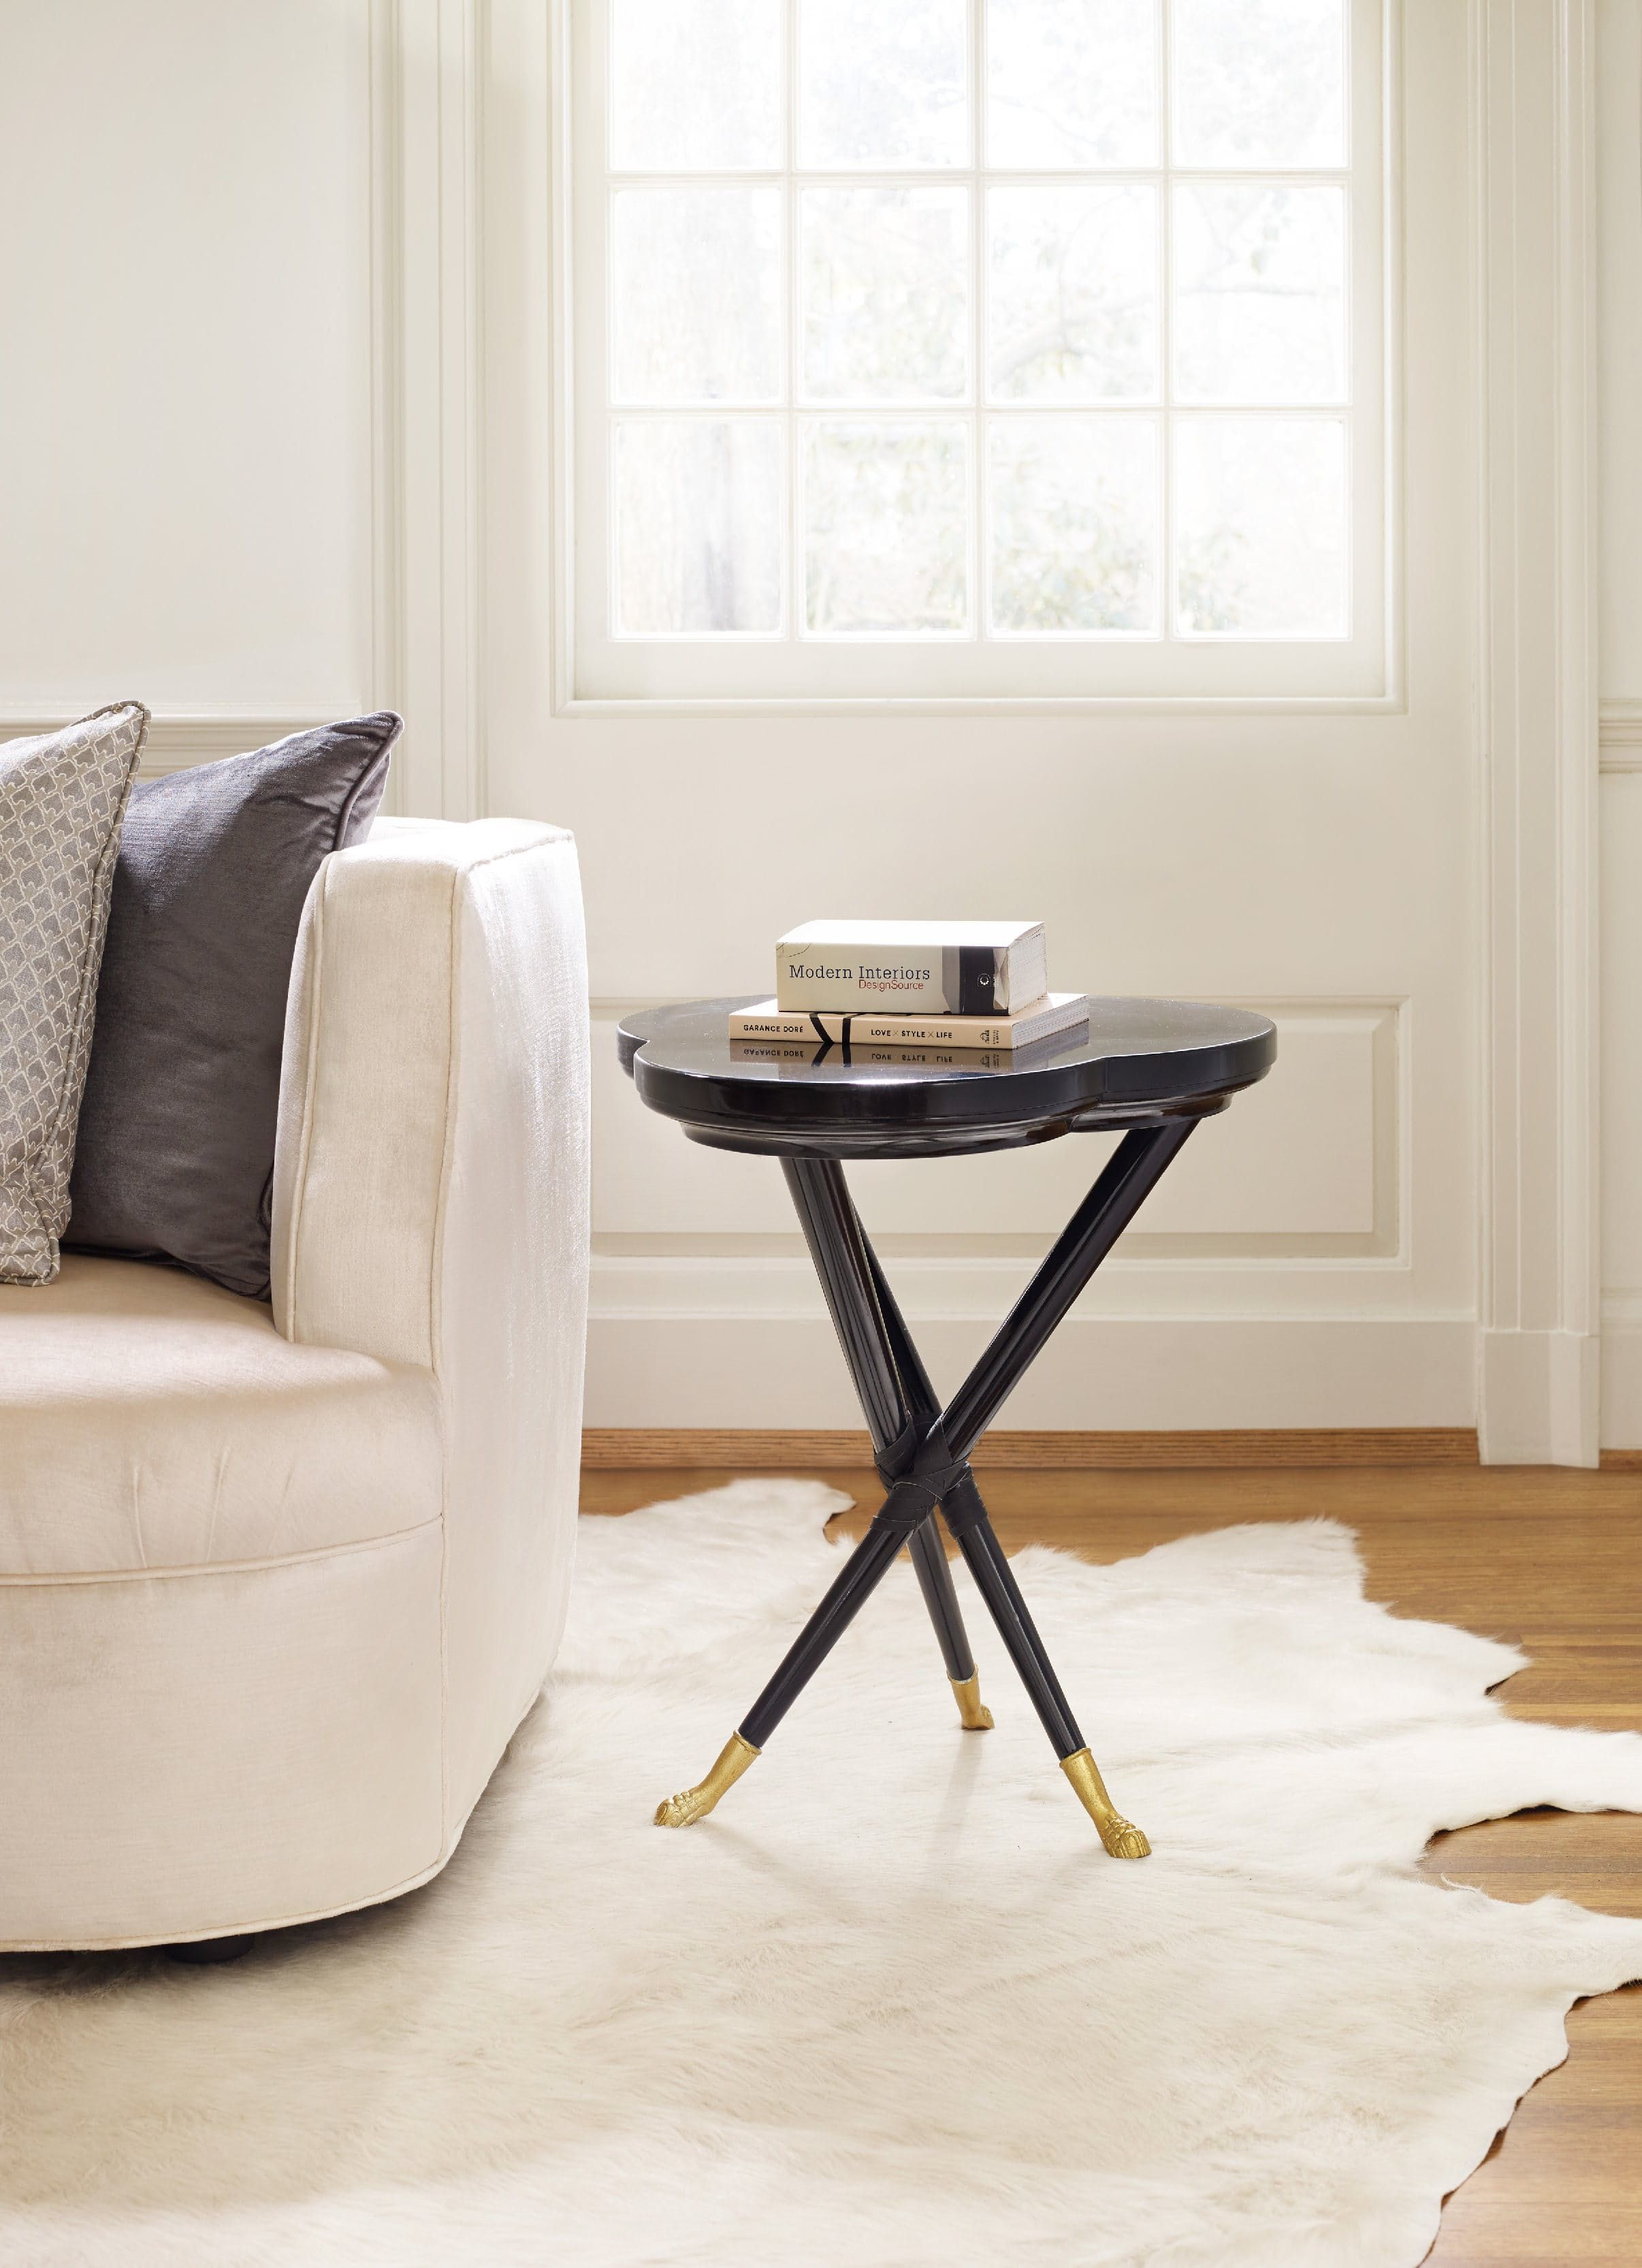 Cynthia Rowley for Hooker Furniture Lucky Clover Accent Table 1586